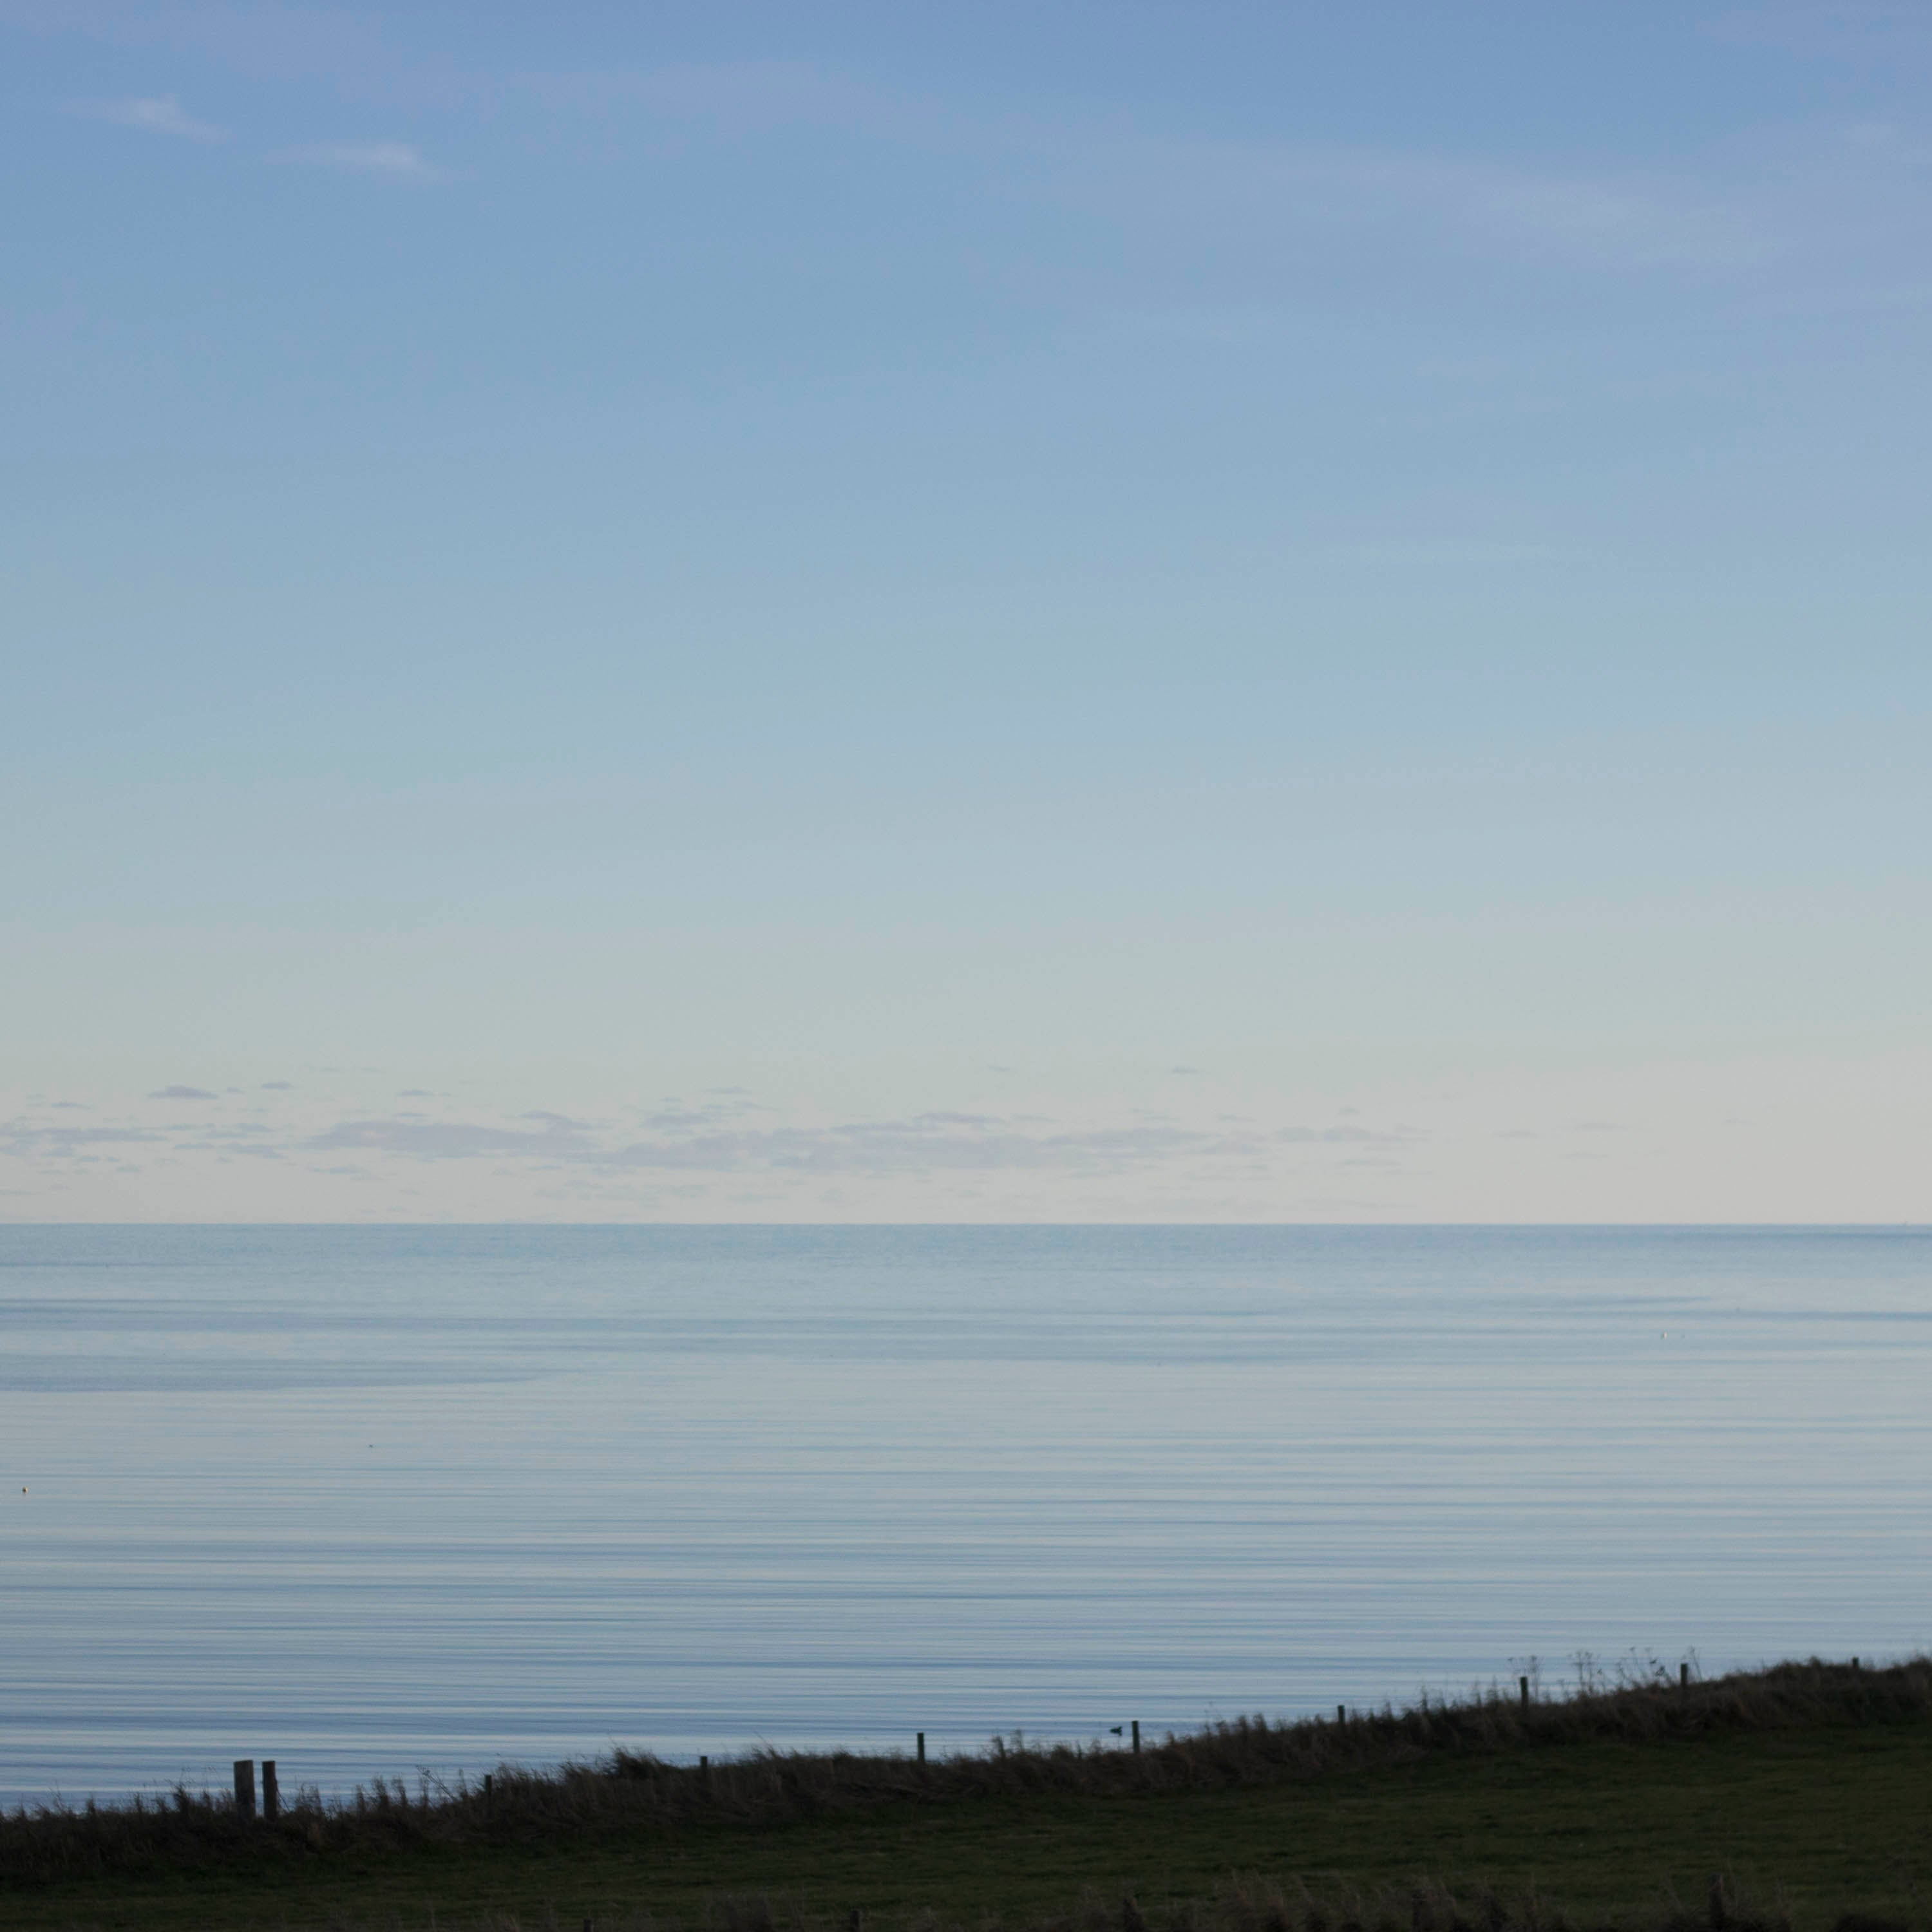 Looking out over a grassy field, at twilight, to a very still sea at Hoswick, Shetland